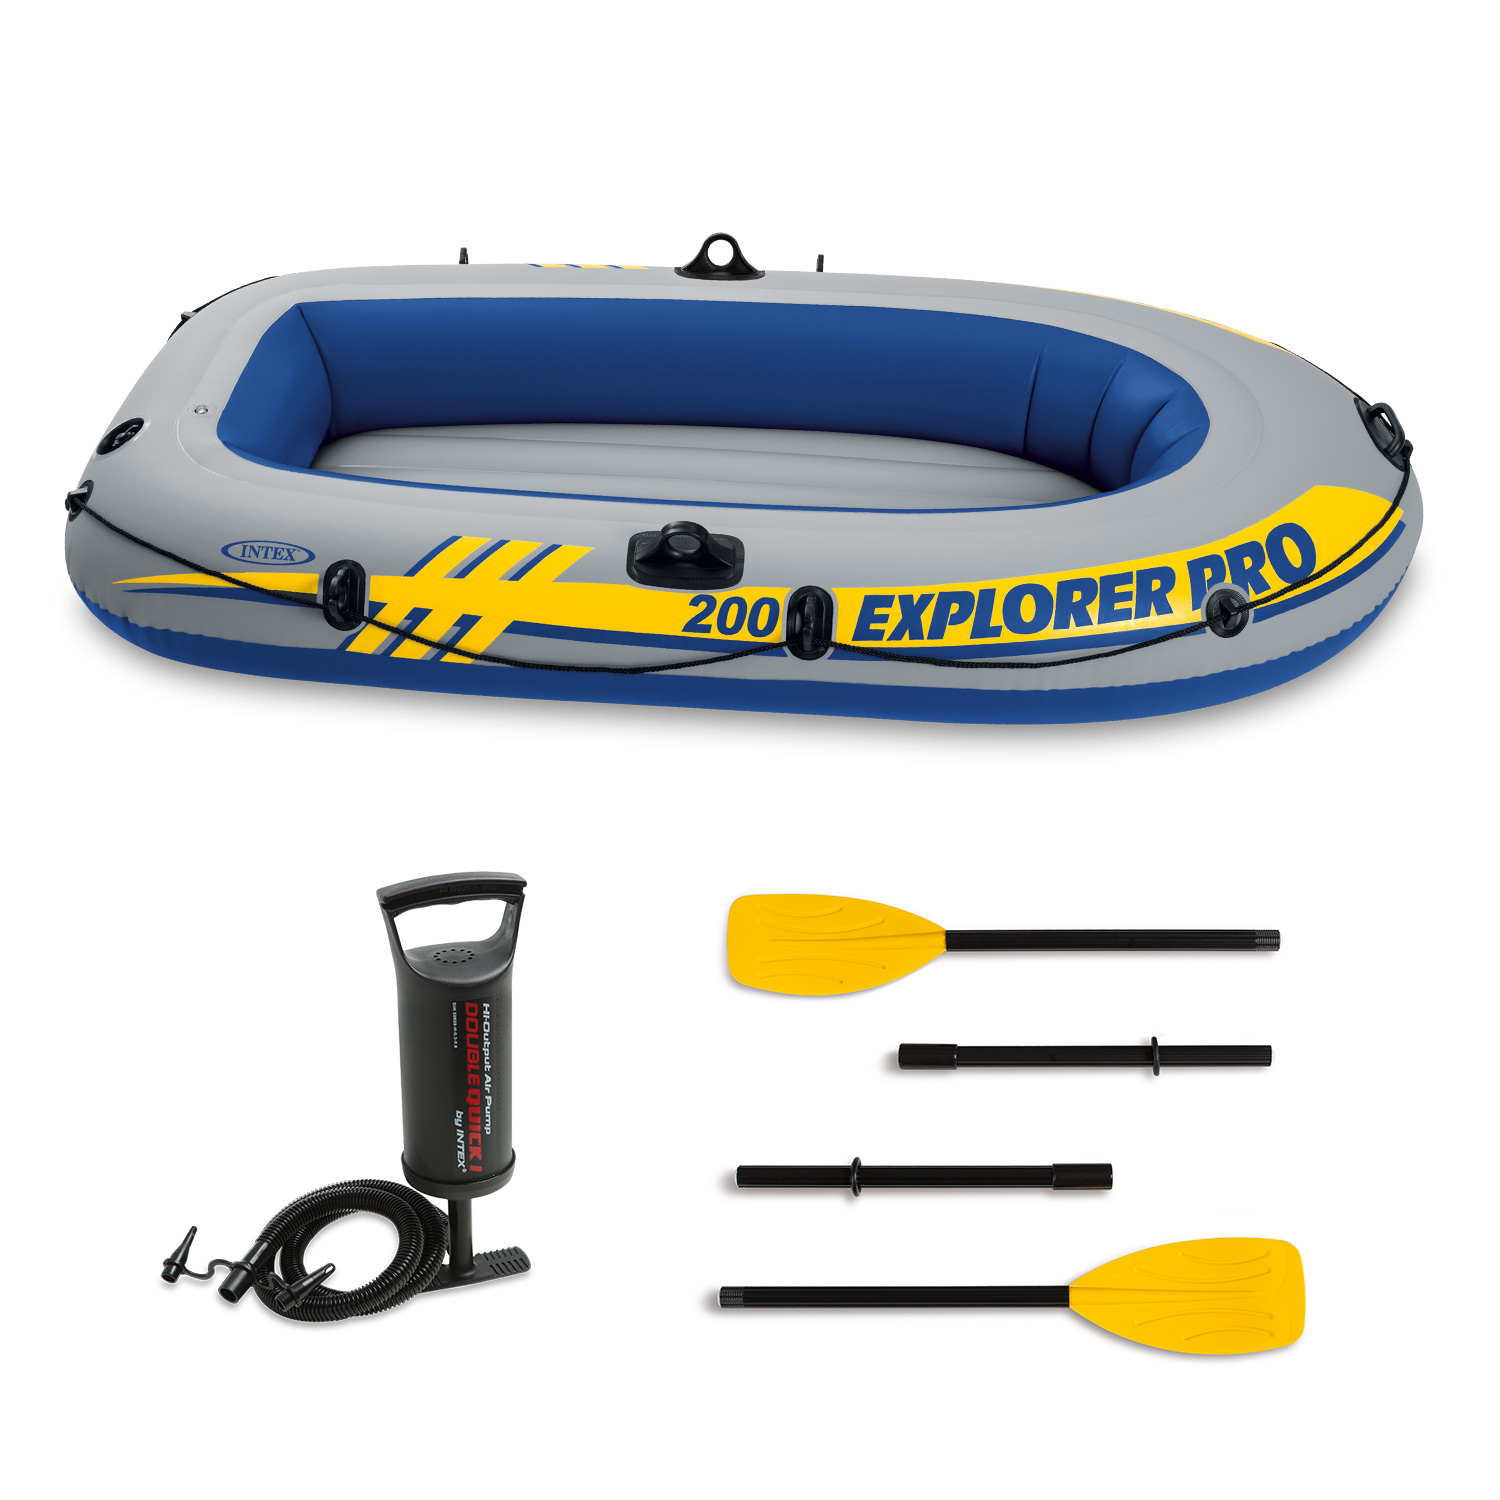 "Intex Inflatable Explorer Pro 200 Two-Person Boat with Oars and Pump, 77"" x 40"" x 13"""